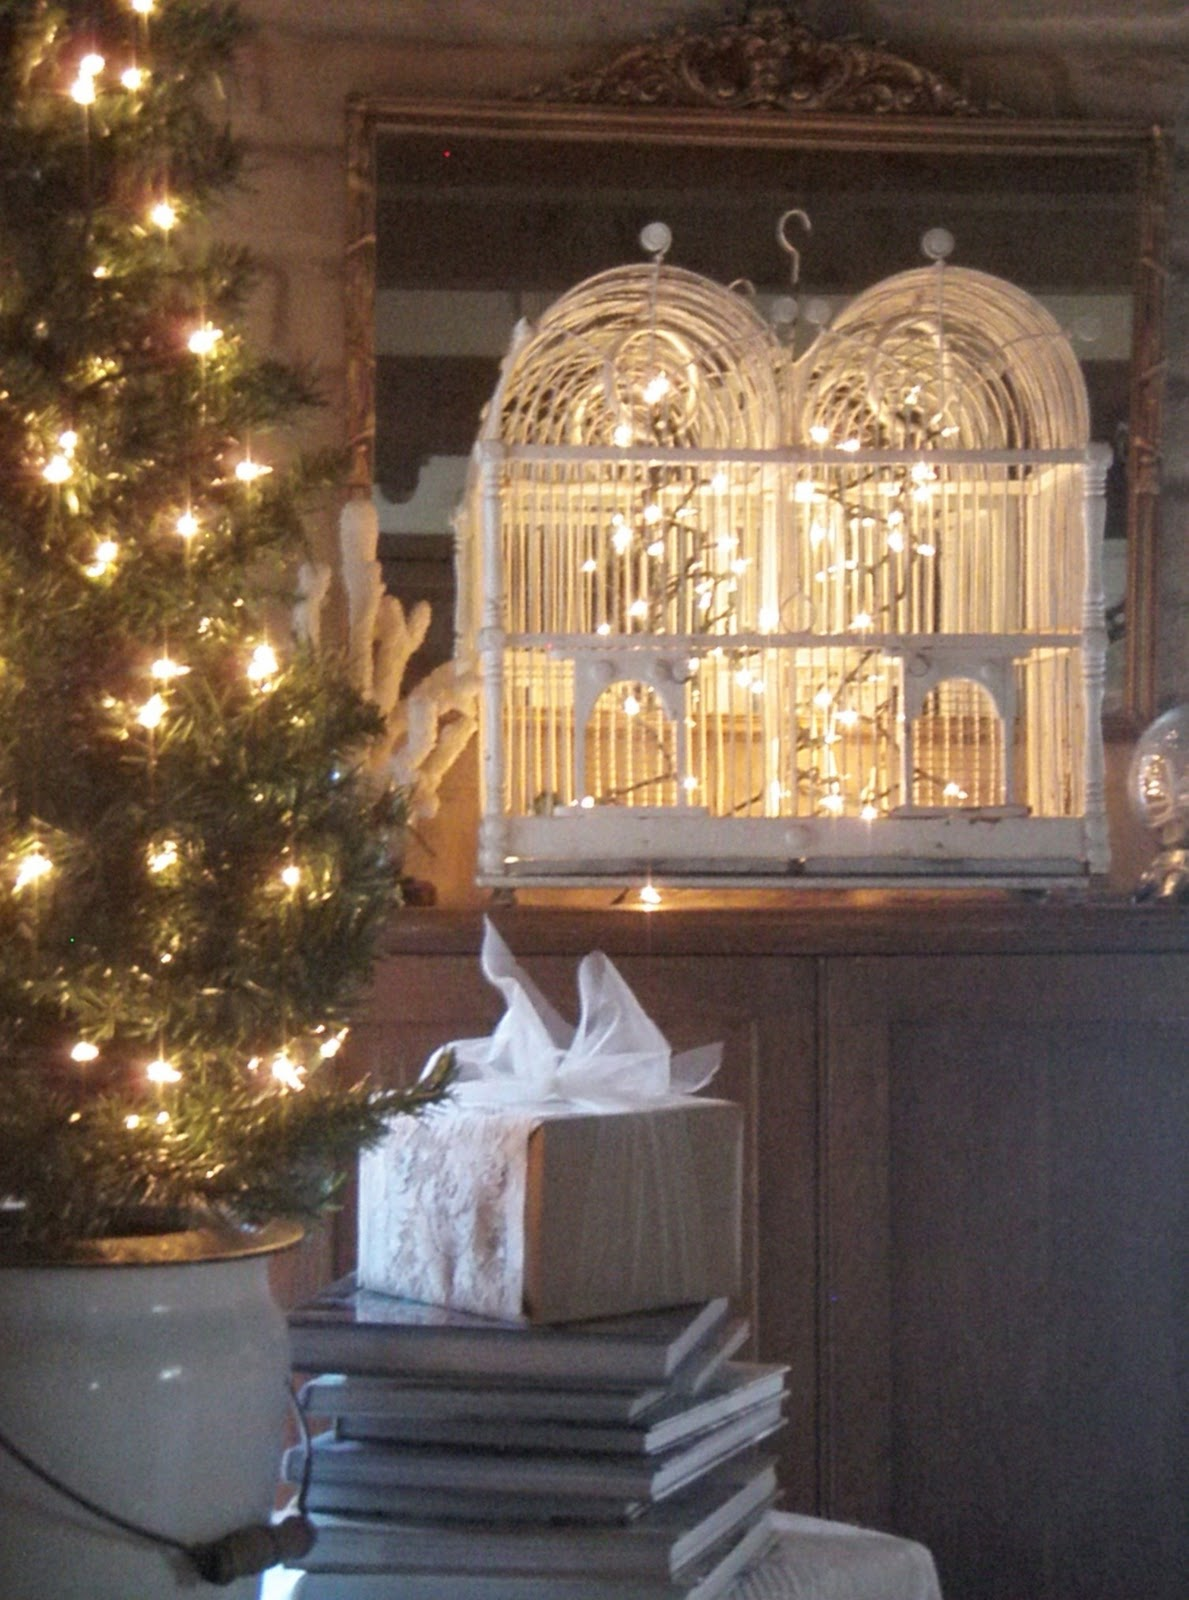 Our hopeful home christmas decorating with vintage birdcages for Indoor xmas decorating ideas